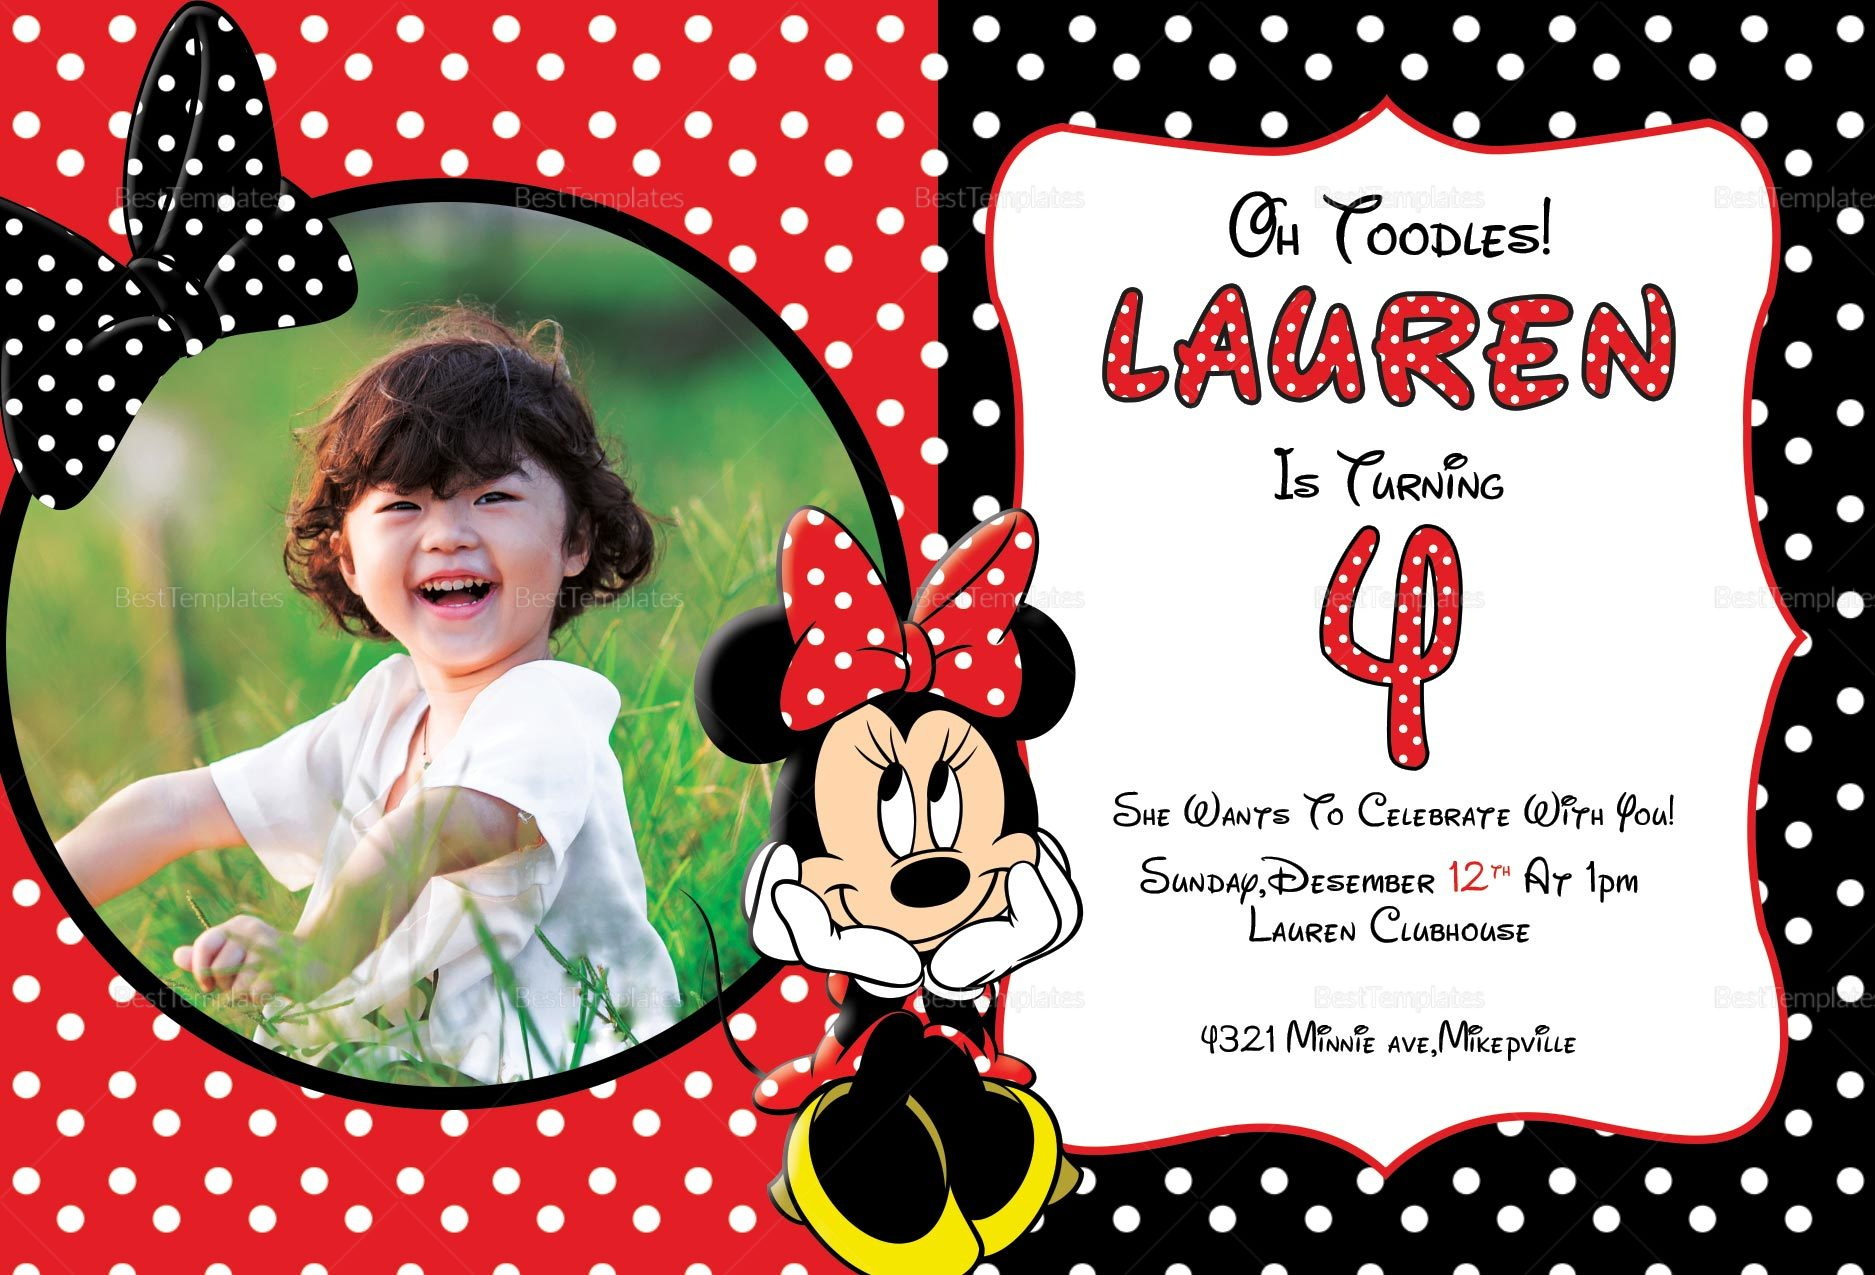 Minnie Mouse Photo Invitation Card Design Template